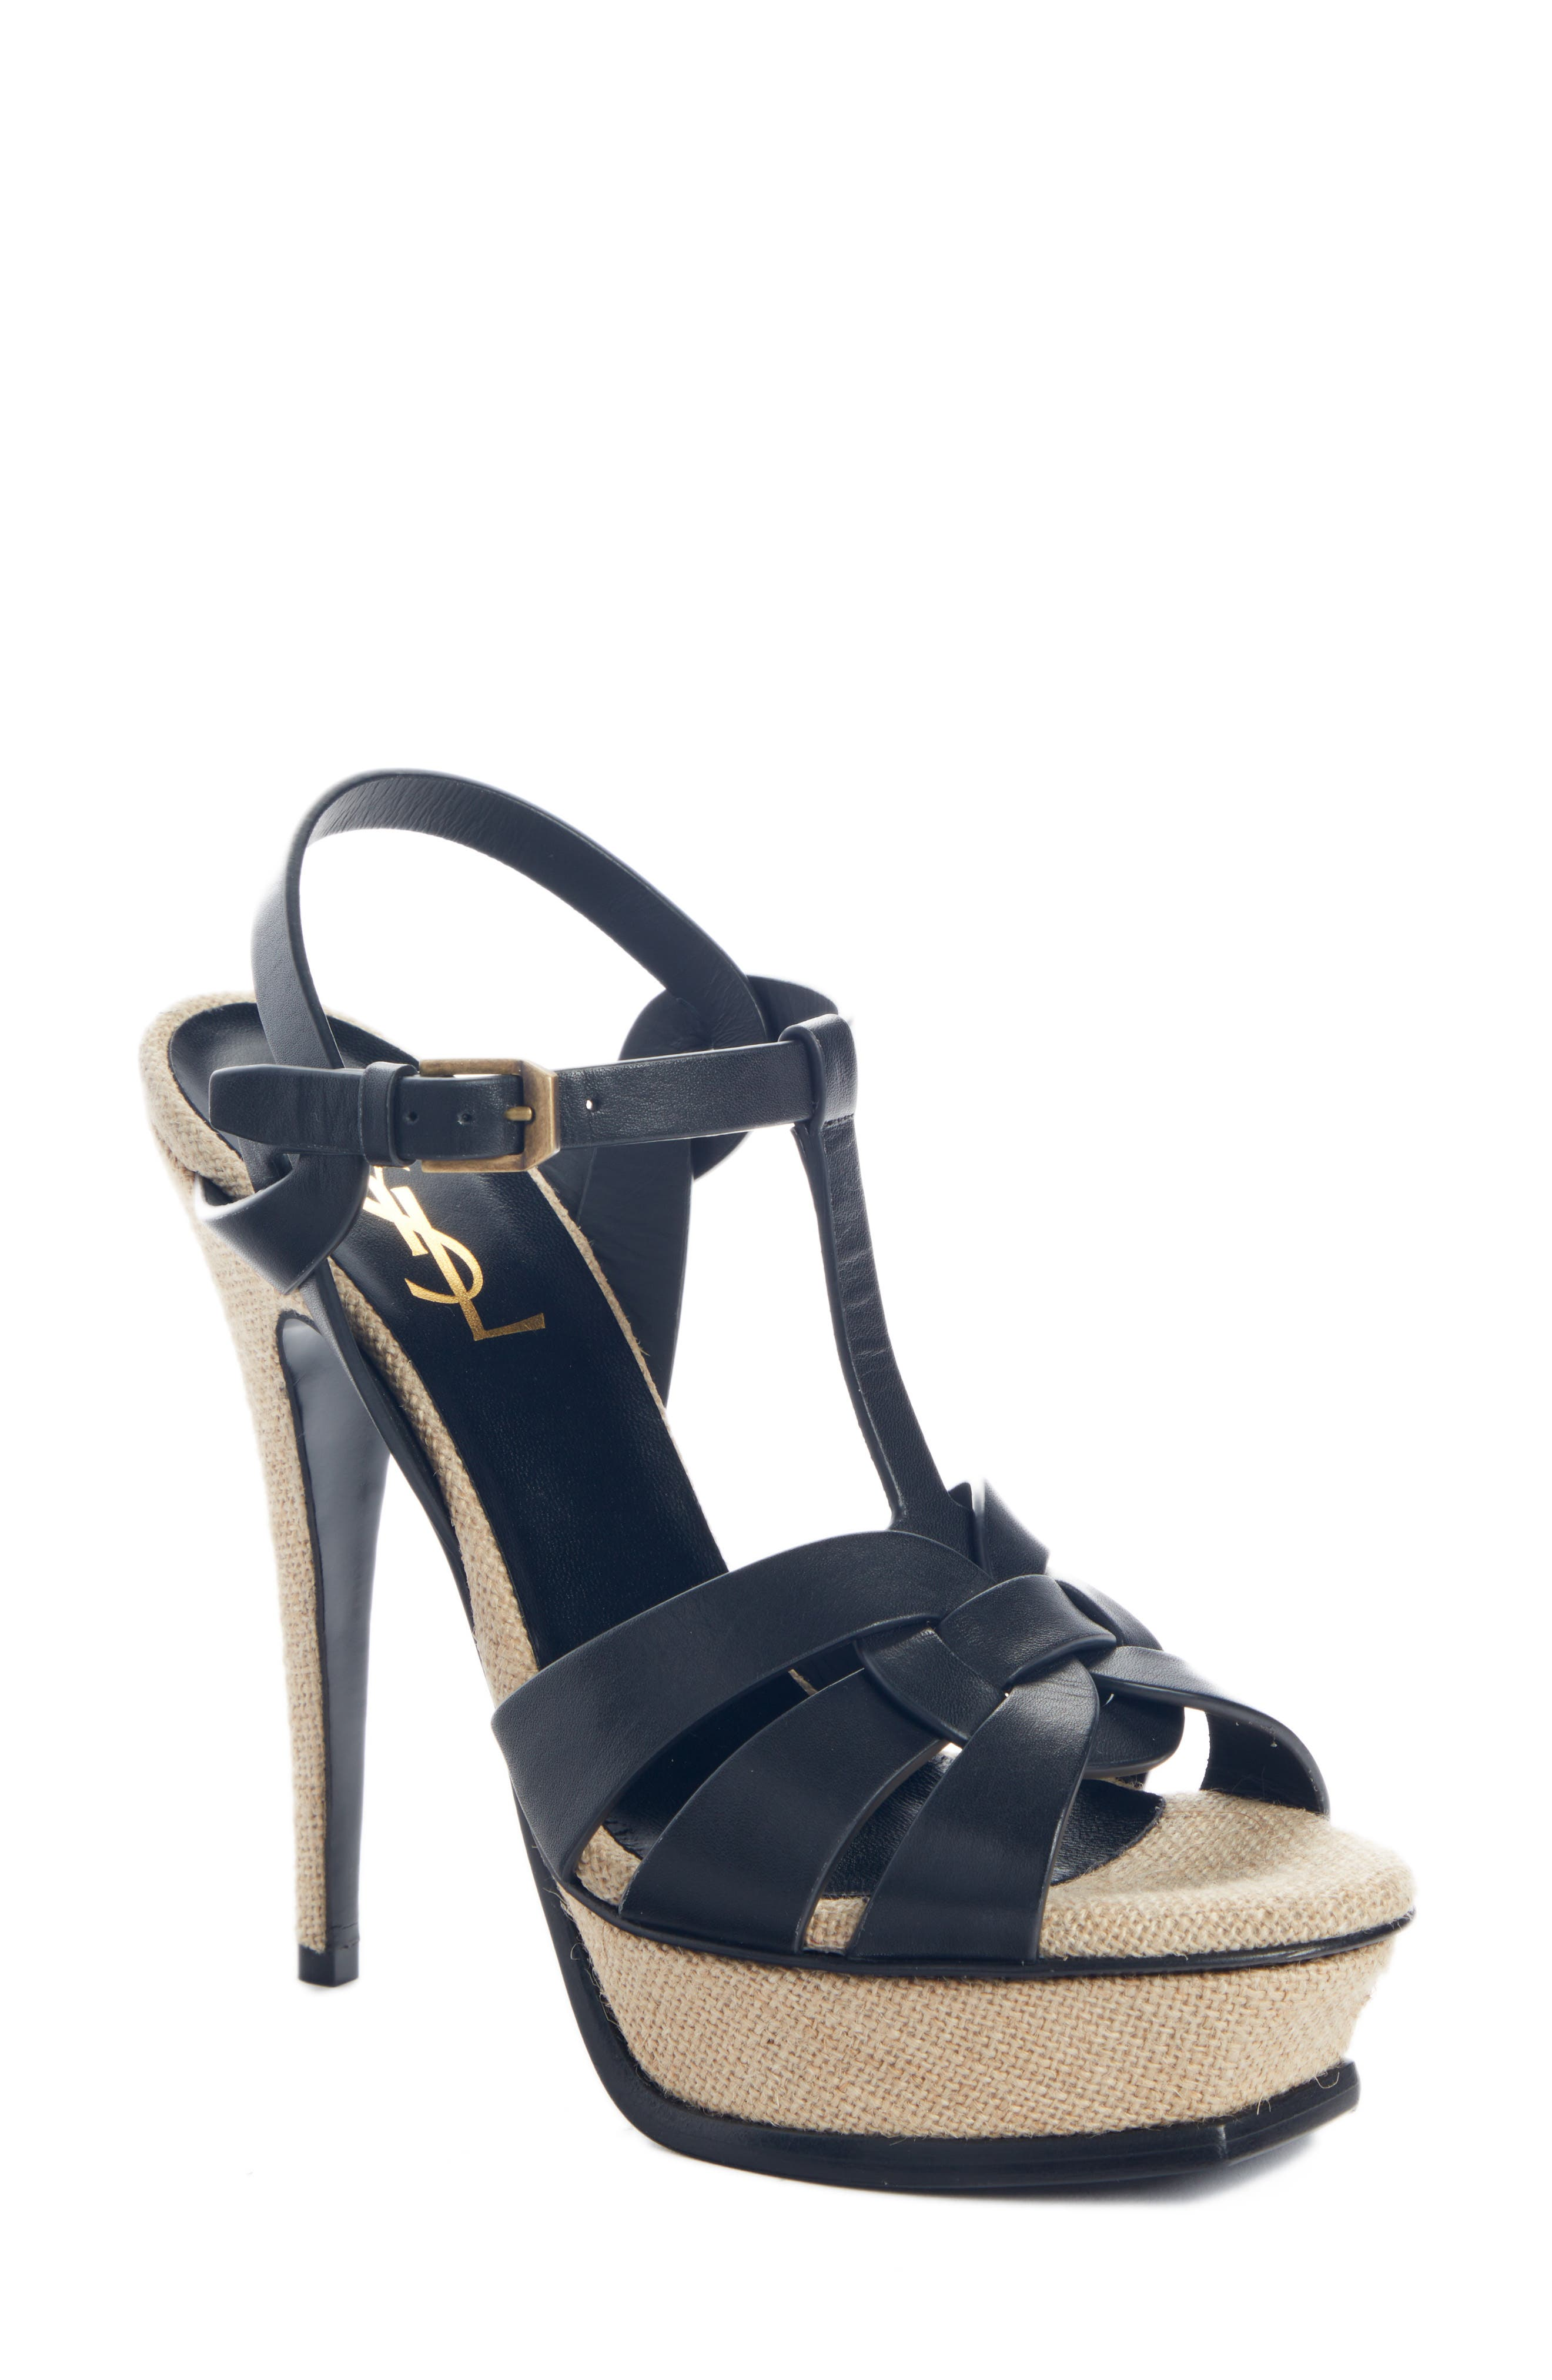 A medallion of intersecting straps crowns the toe of a sandal that pairs towering stature with rustic, unbleached burlap wrapping it from platform to stiletto. Style Name: Saint Laurent Tribute T-Strap Platform Sandal (Women). Style Number: 5952972. Available in stores.